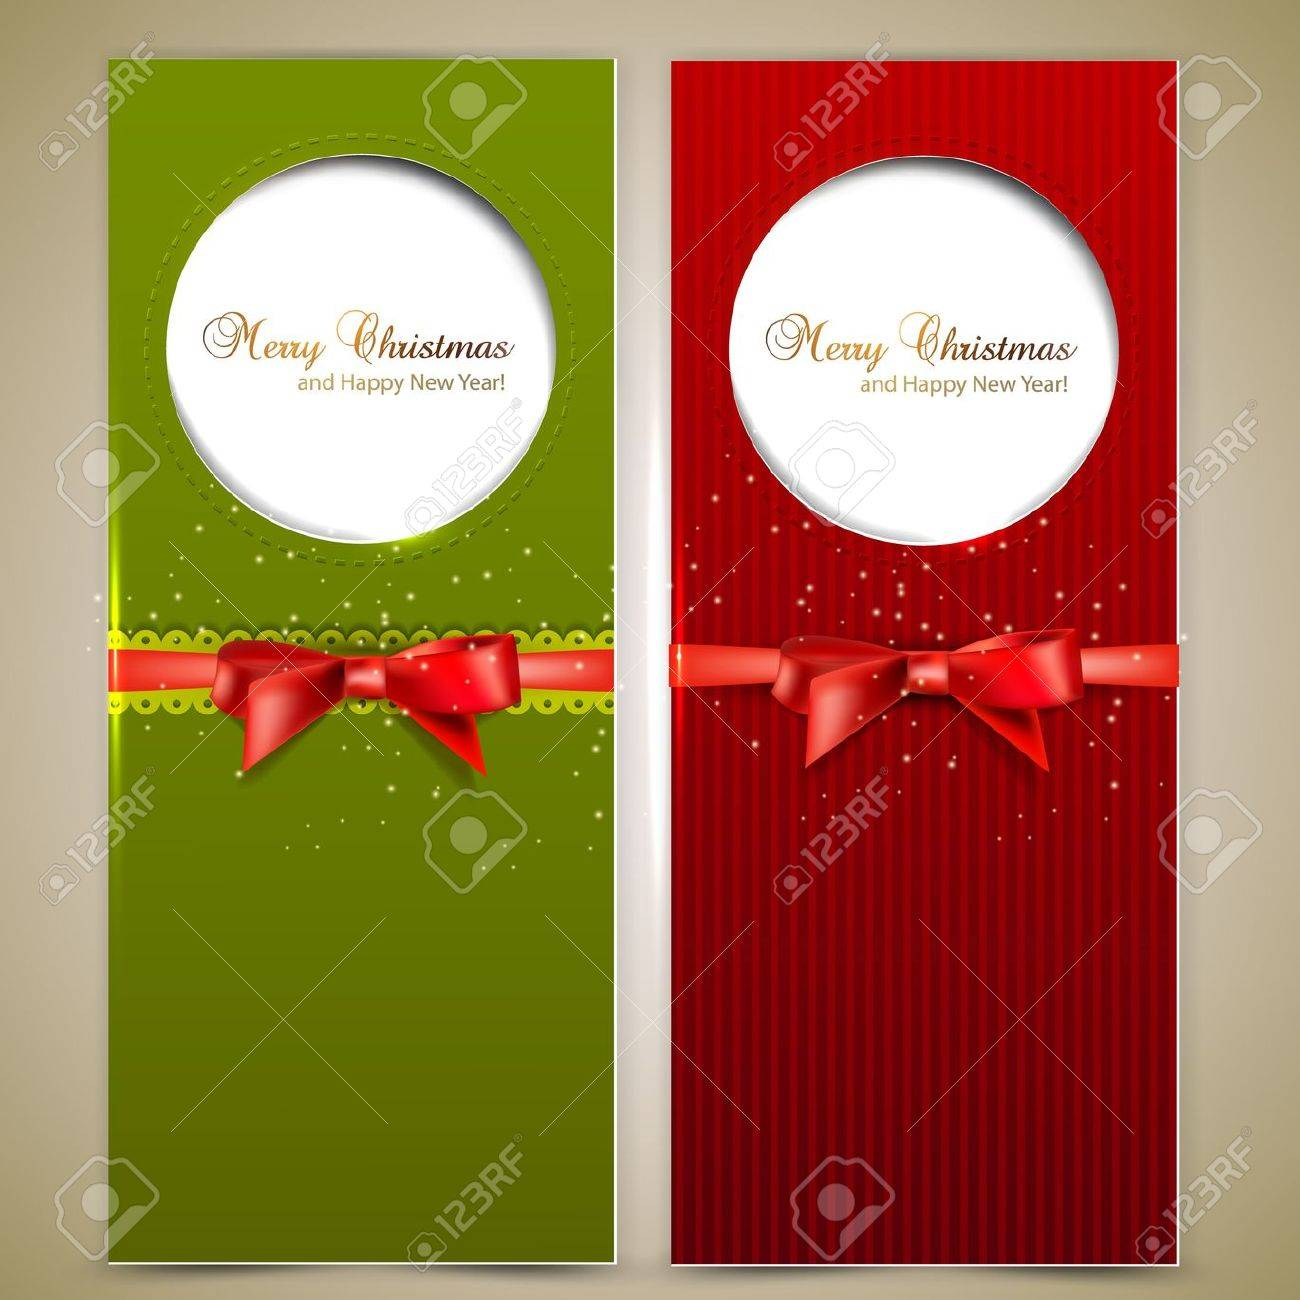 Greeting cards with red bows and copy space. Stock Vector - 16112864